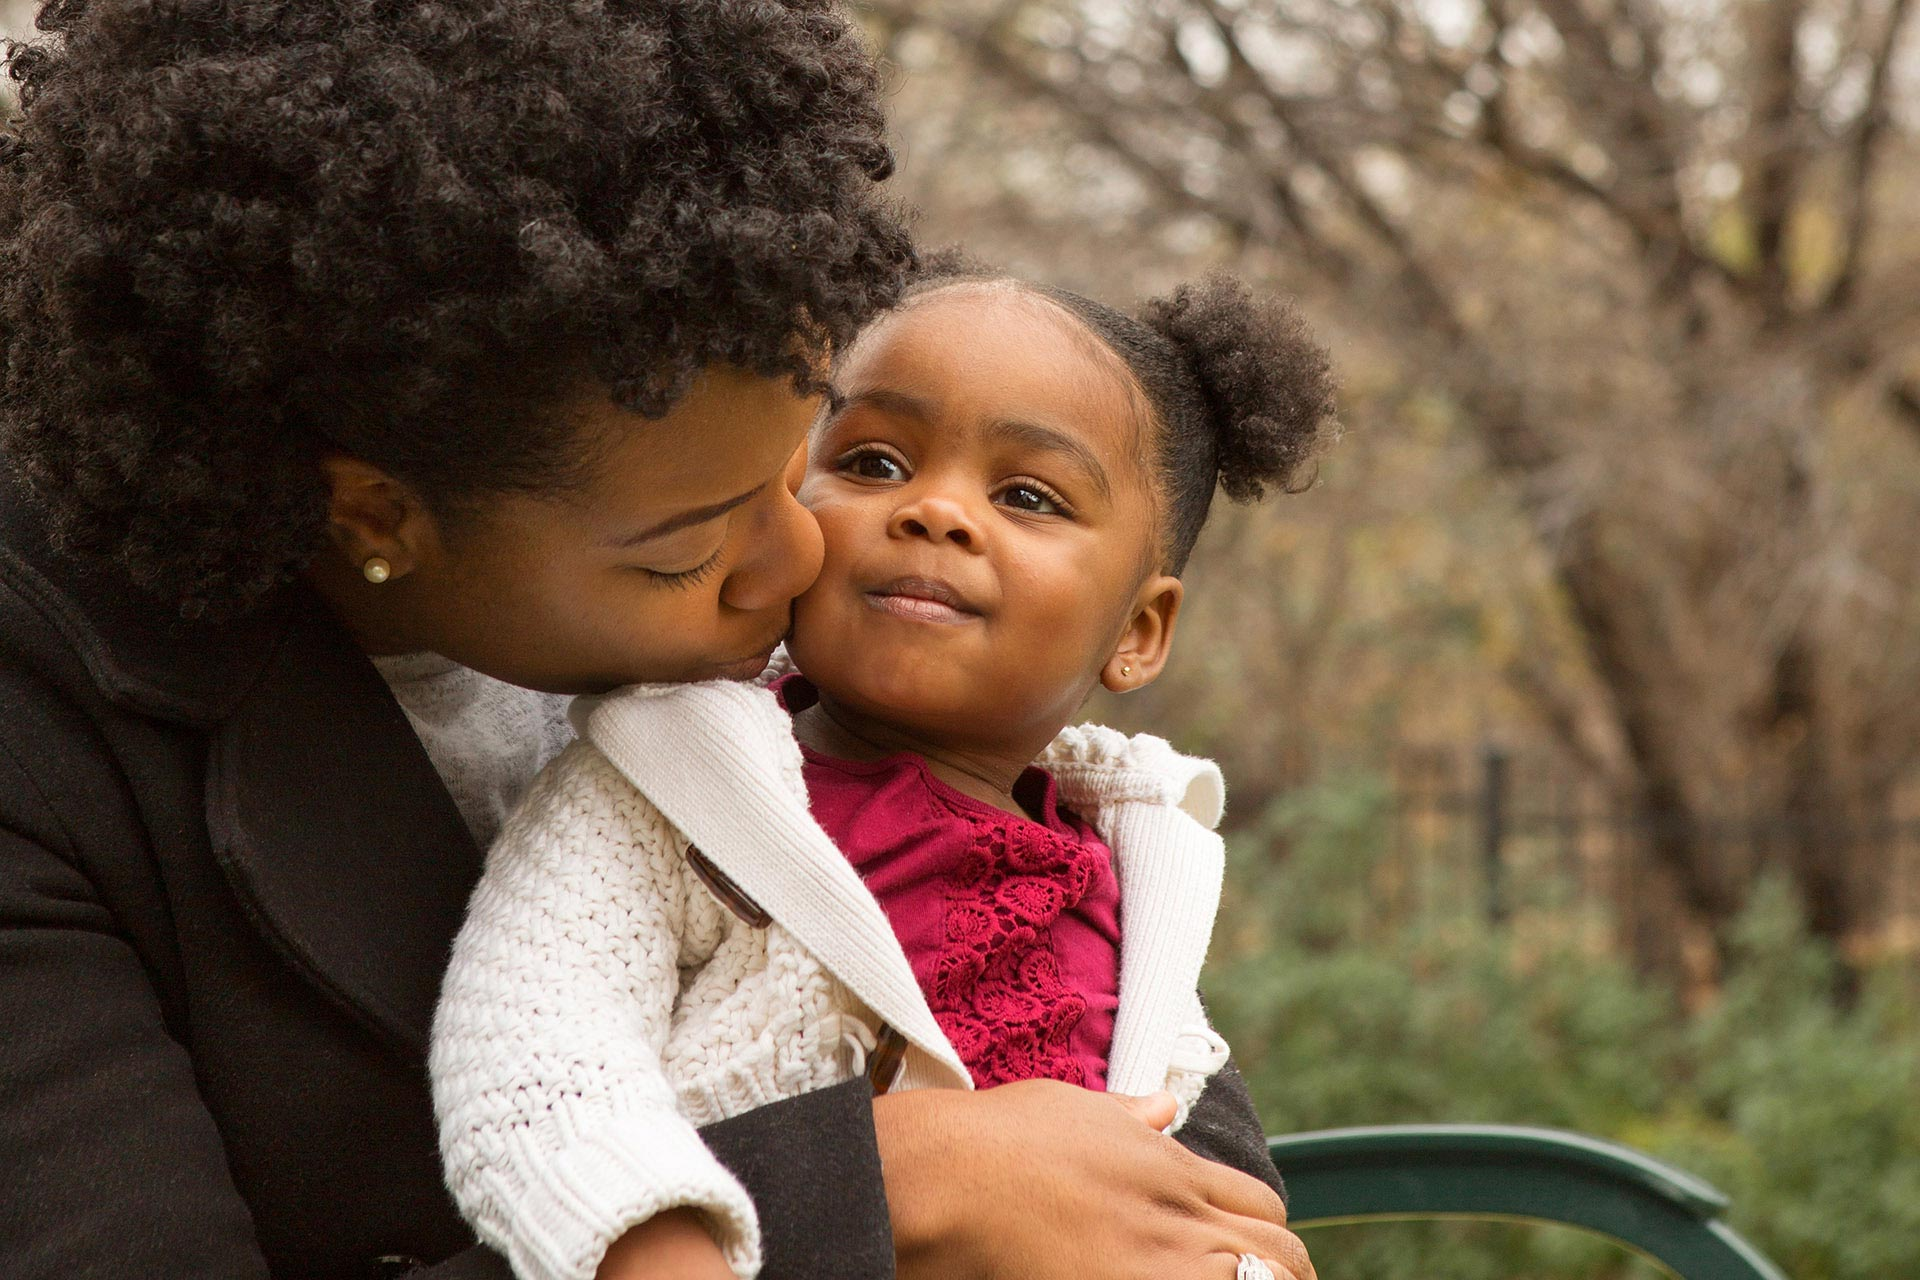 Illinois Rental Assistance Program - Mother and child embracing each other